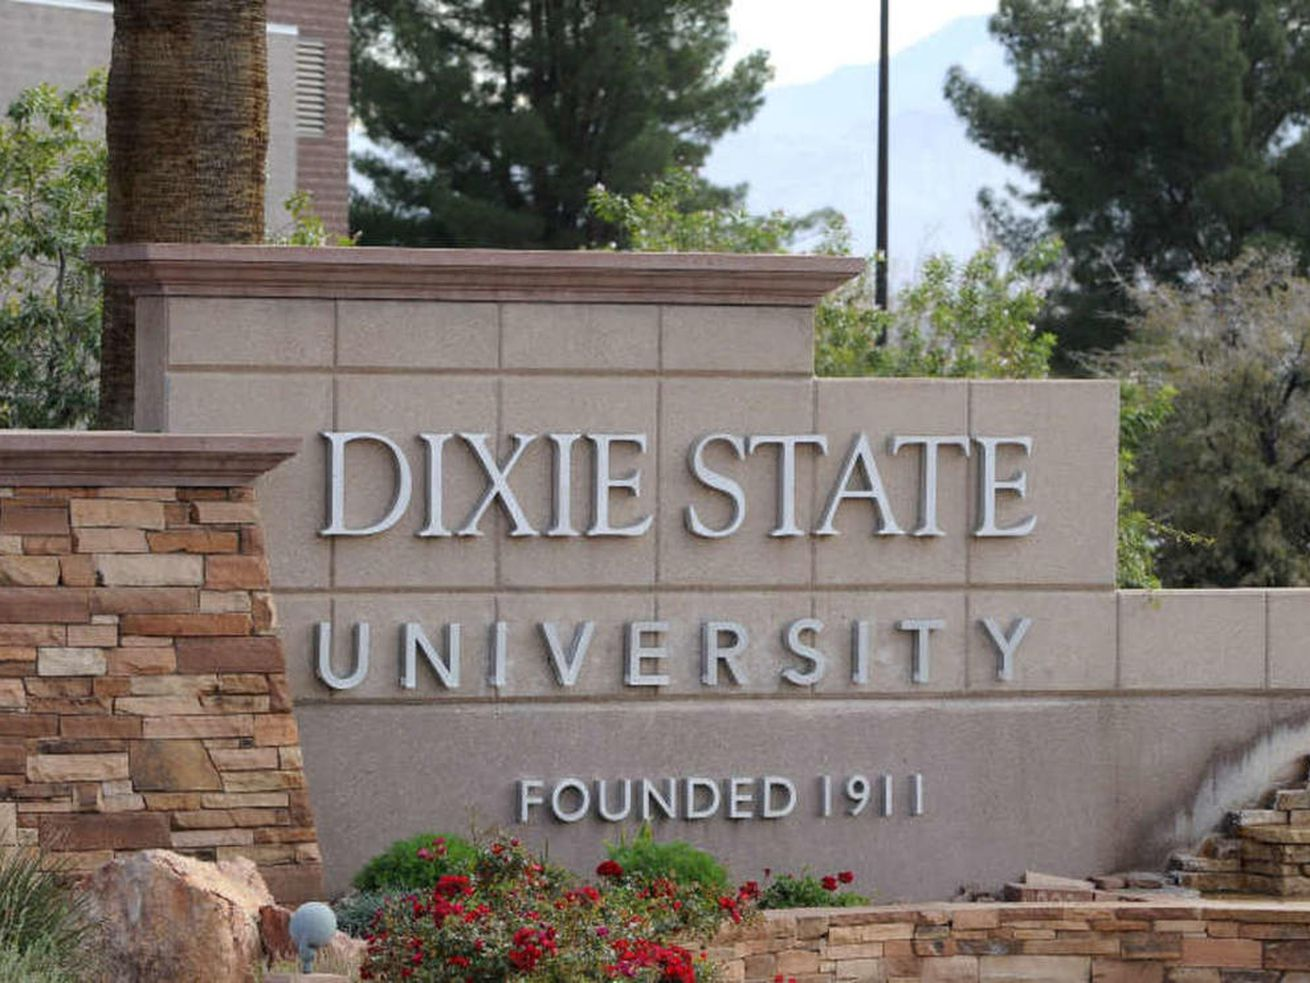 Dixie State student claims online classes are 'sub par' in lawsuit against Utah System of Higher Education